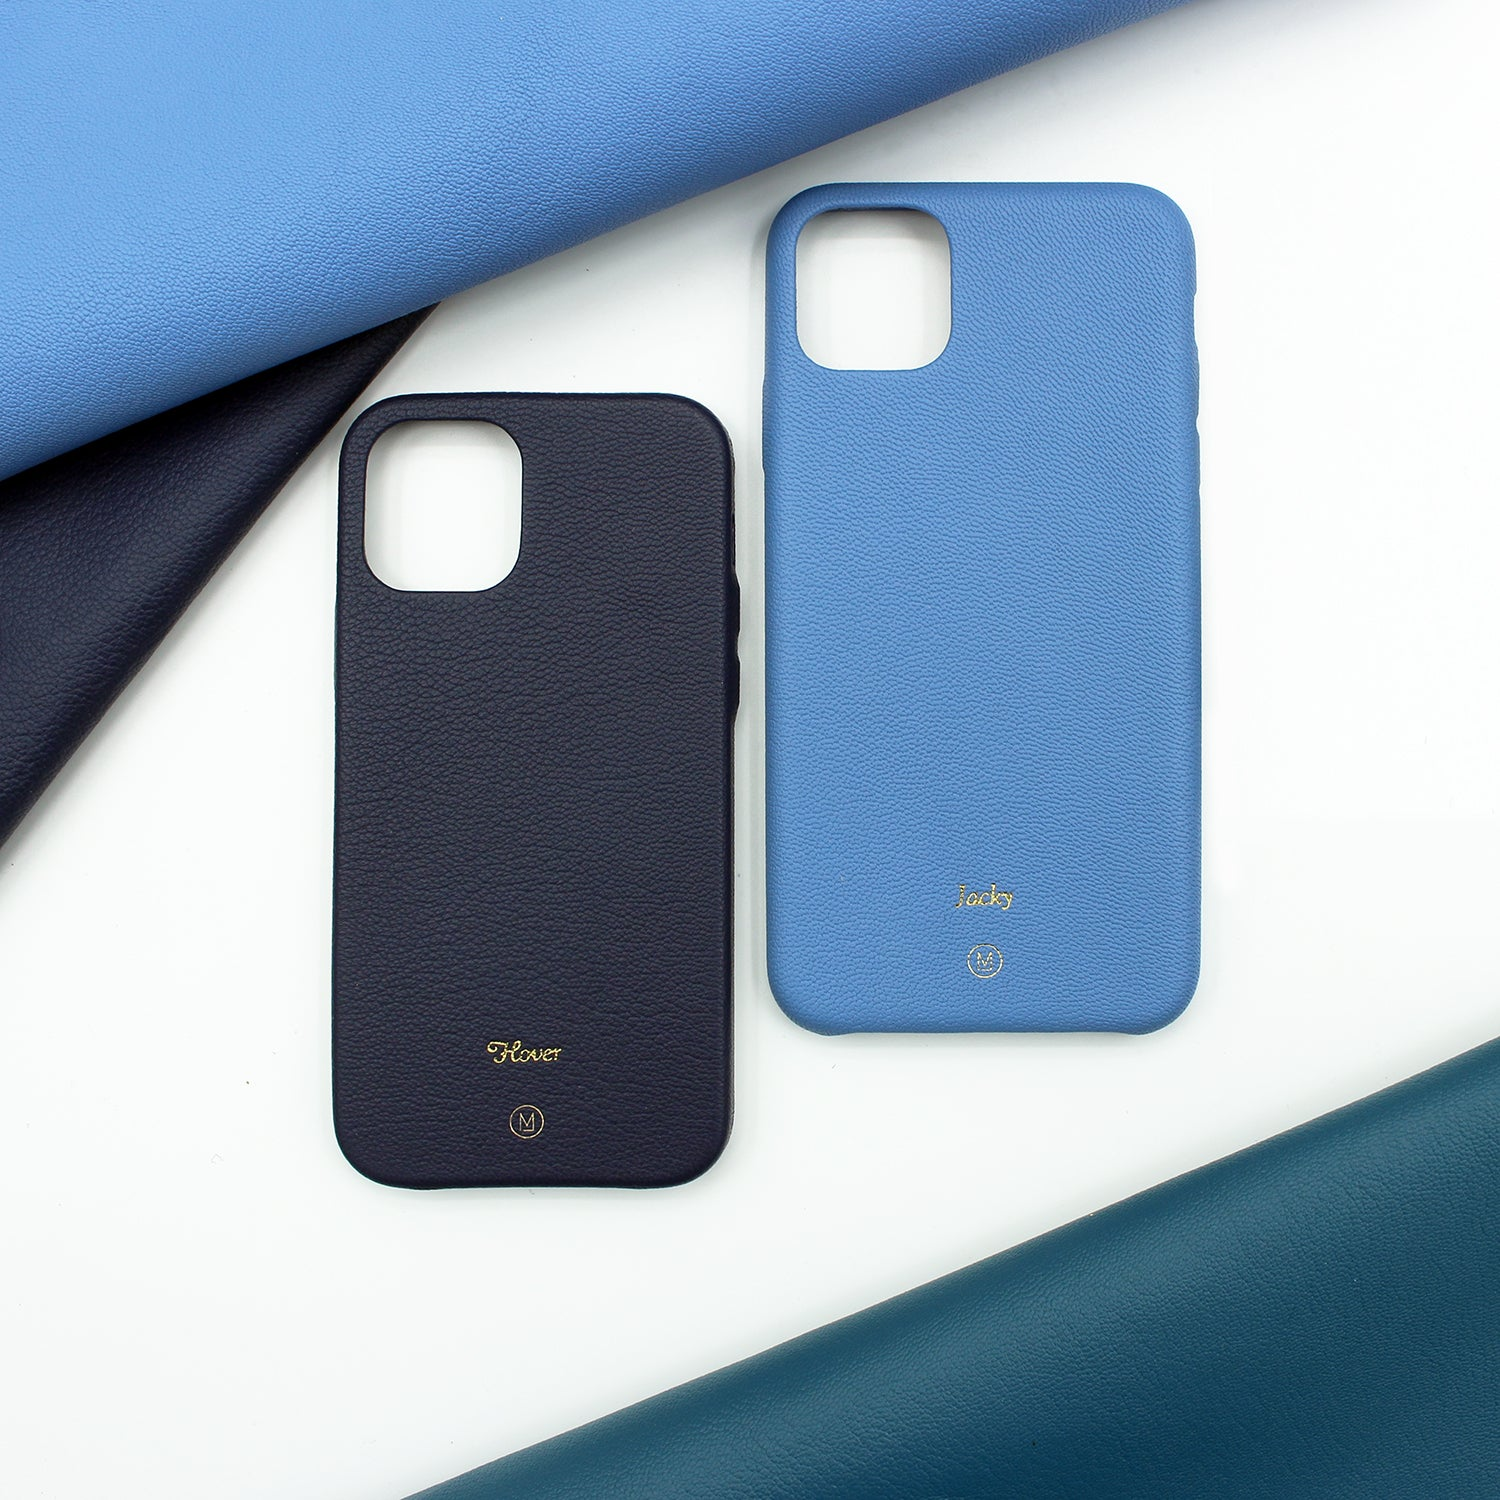 iPhone Case Bundle which includes 2 leather iPhone cases, at 15% off the original price. Different hues of blue are available. Complimentary embossing and international shipping.